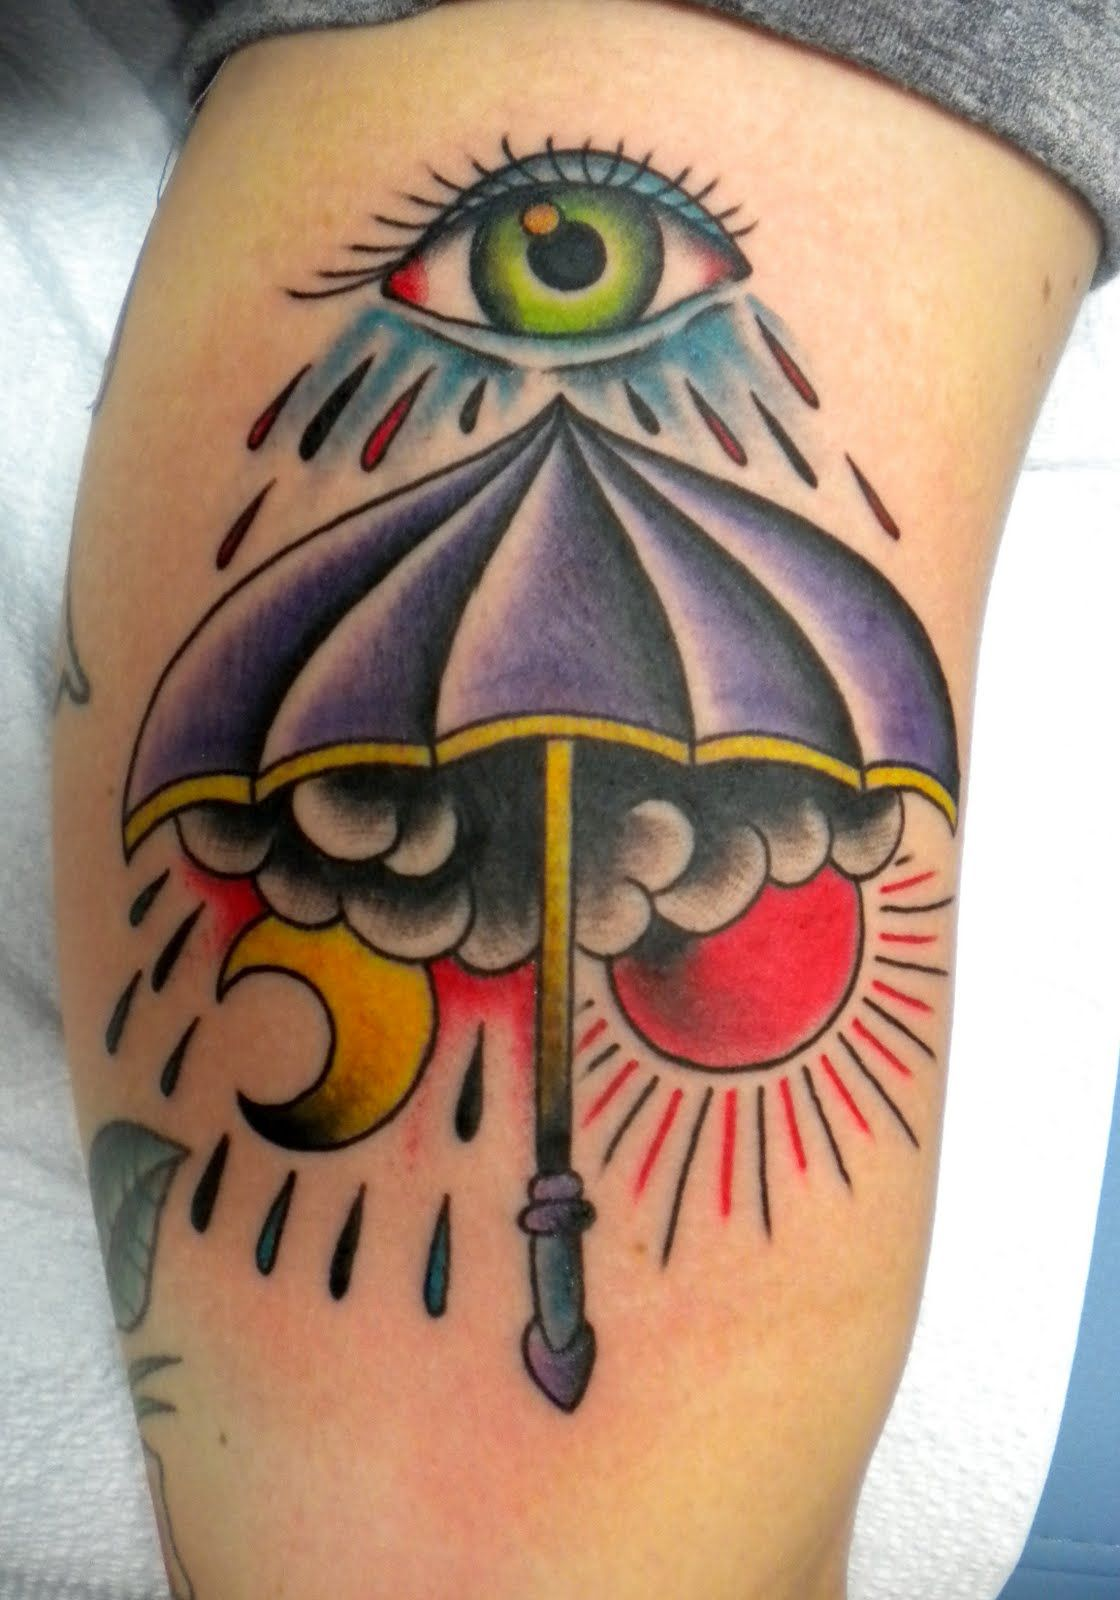 He'll never this one. Umbrella tattoo